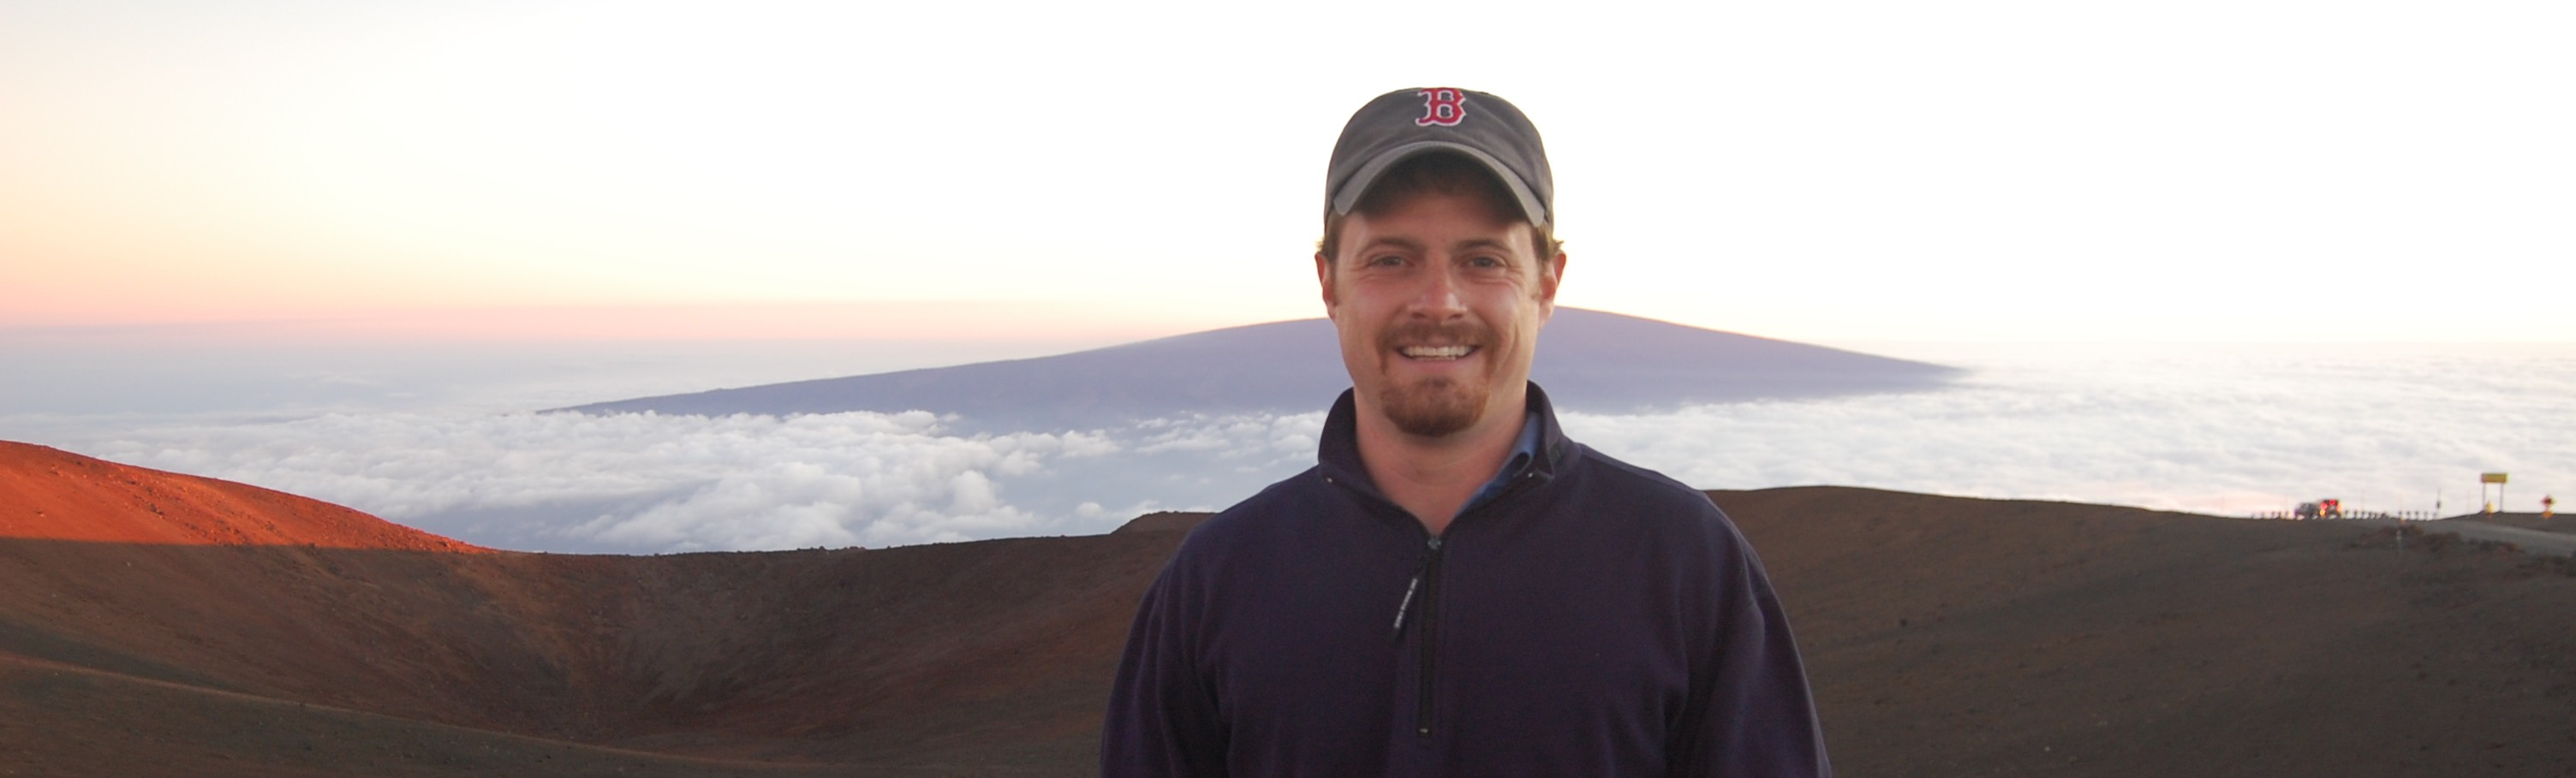 Matthew Boynes on Mauna Kea at sunset